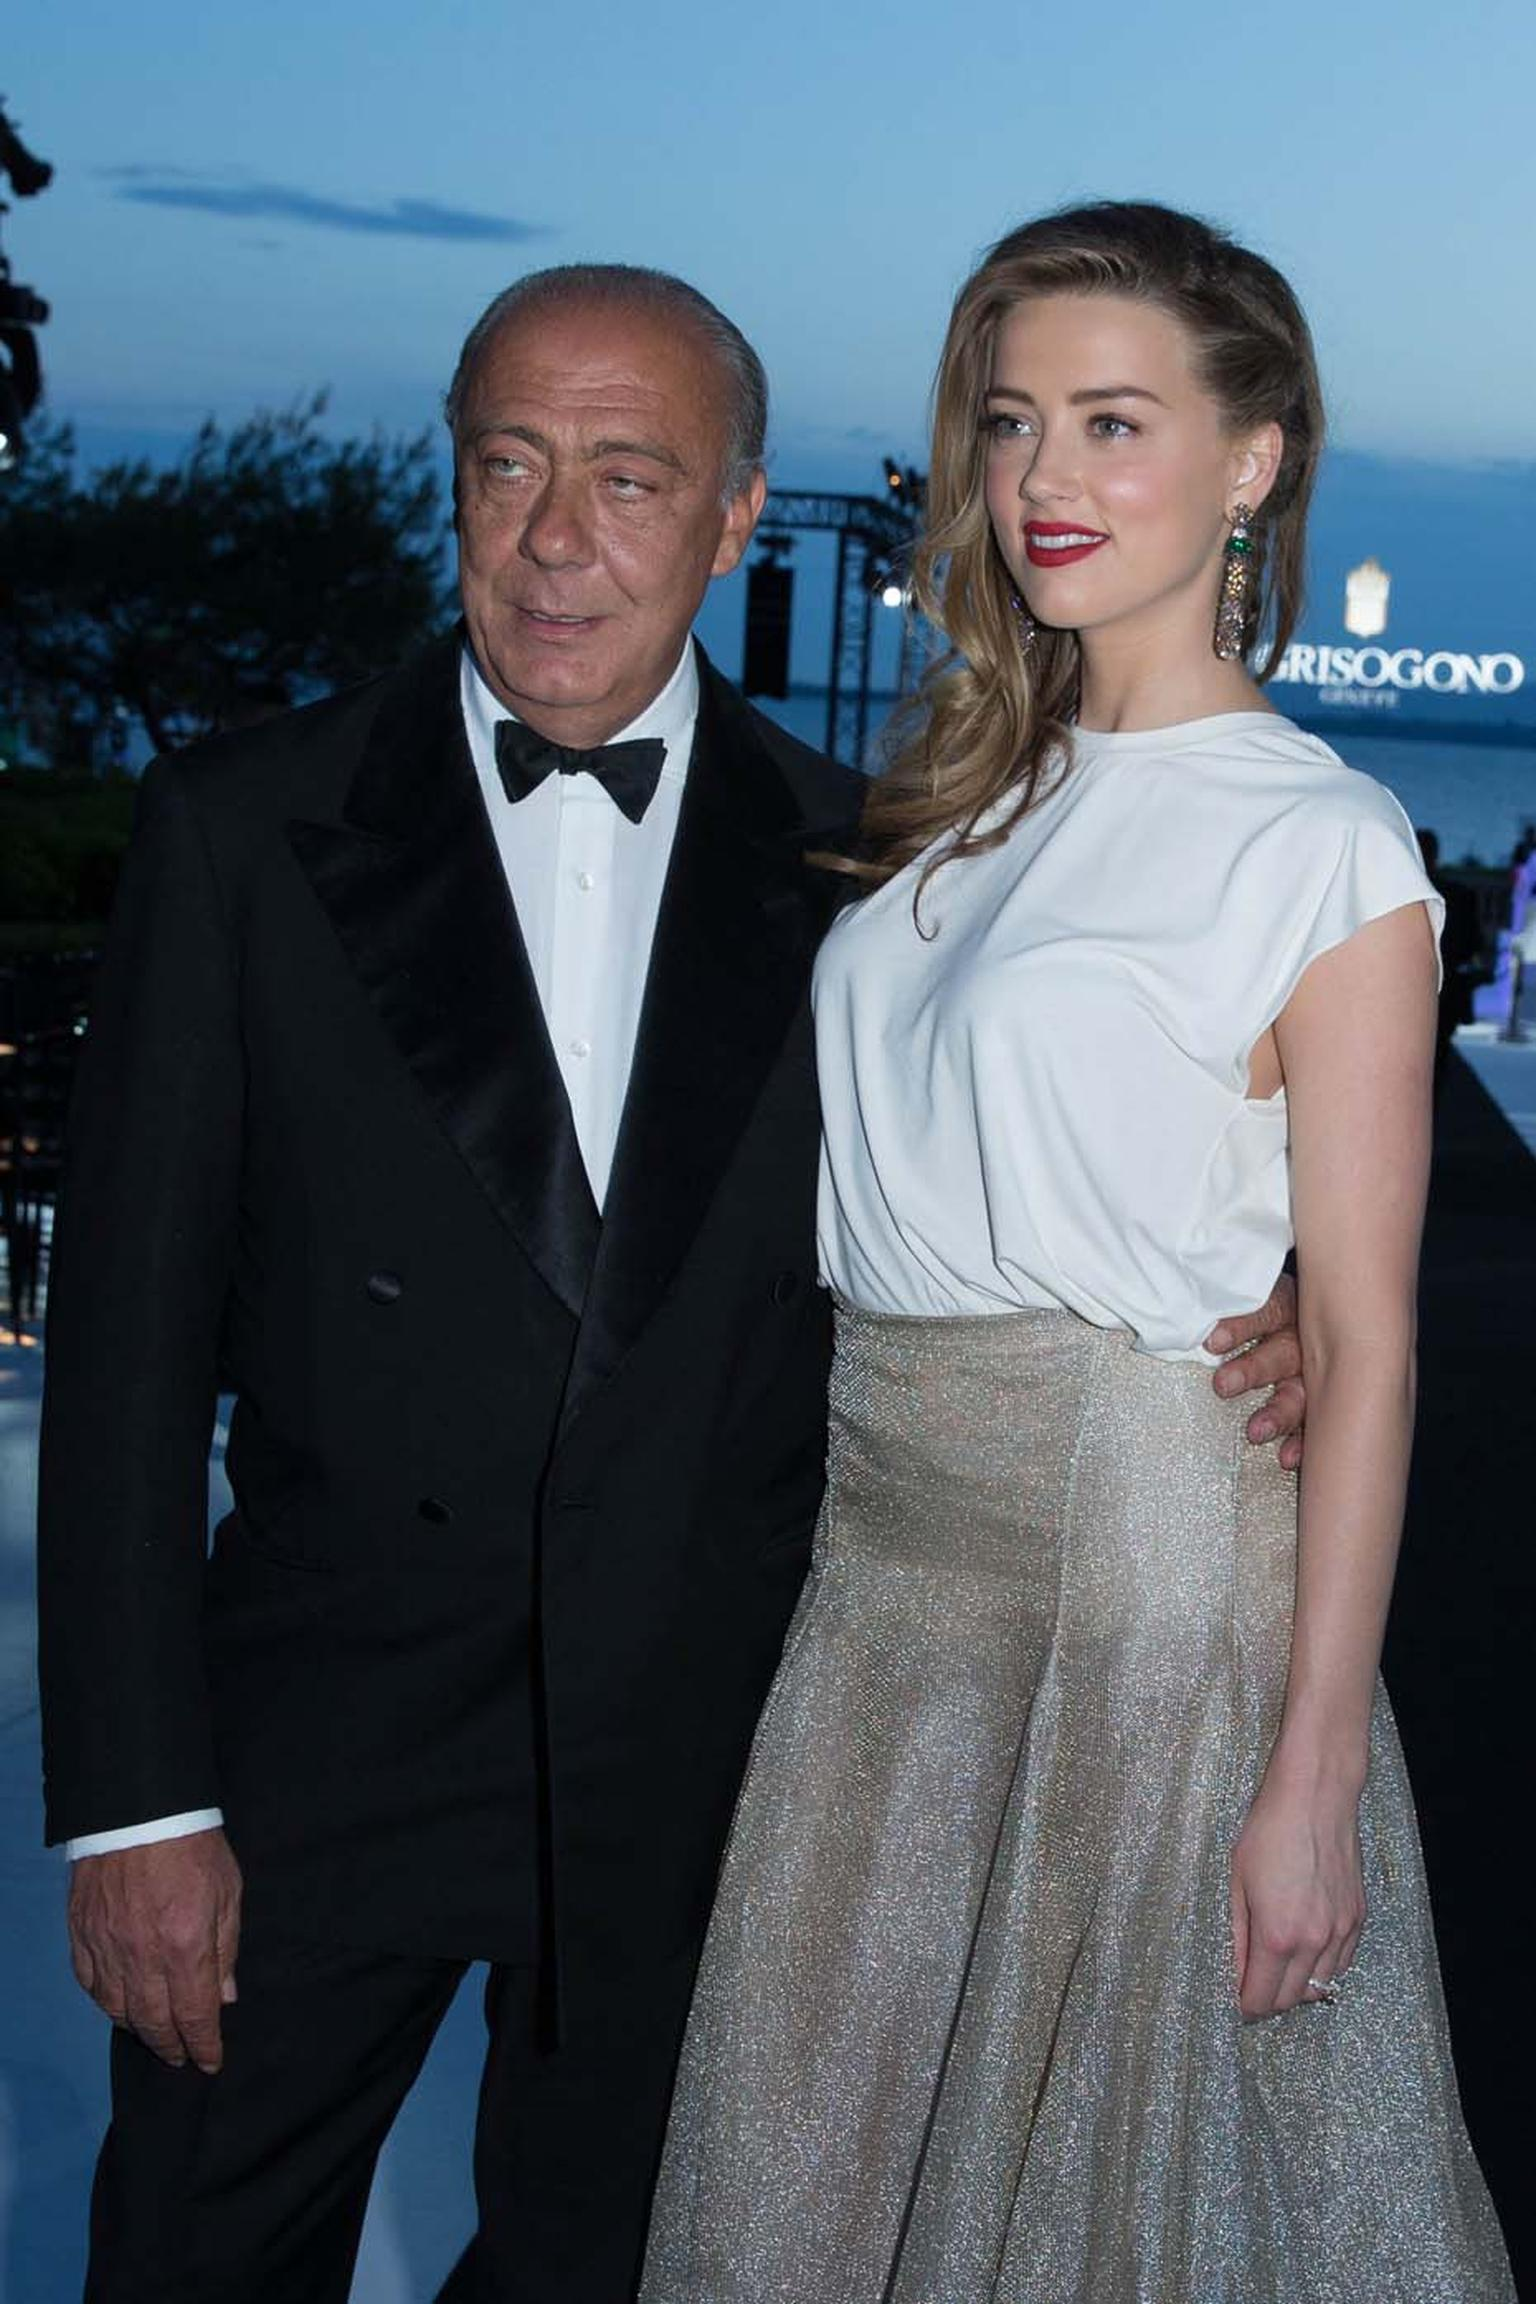 Amber Heard poses with de GRISIGONO founder Fawaz Gruosi during the Swiss jeweller's party at the Hôtel du Cap-Eden-Roc